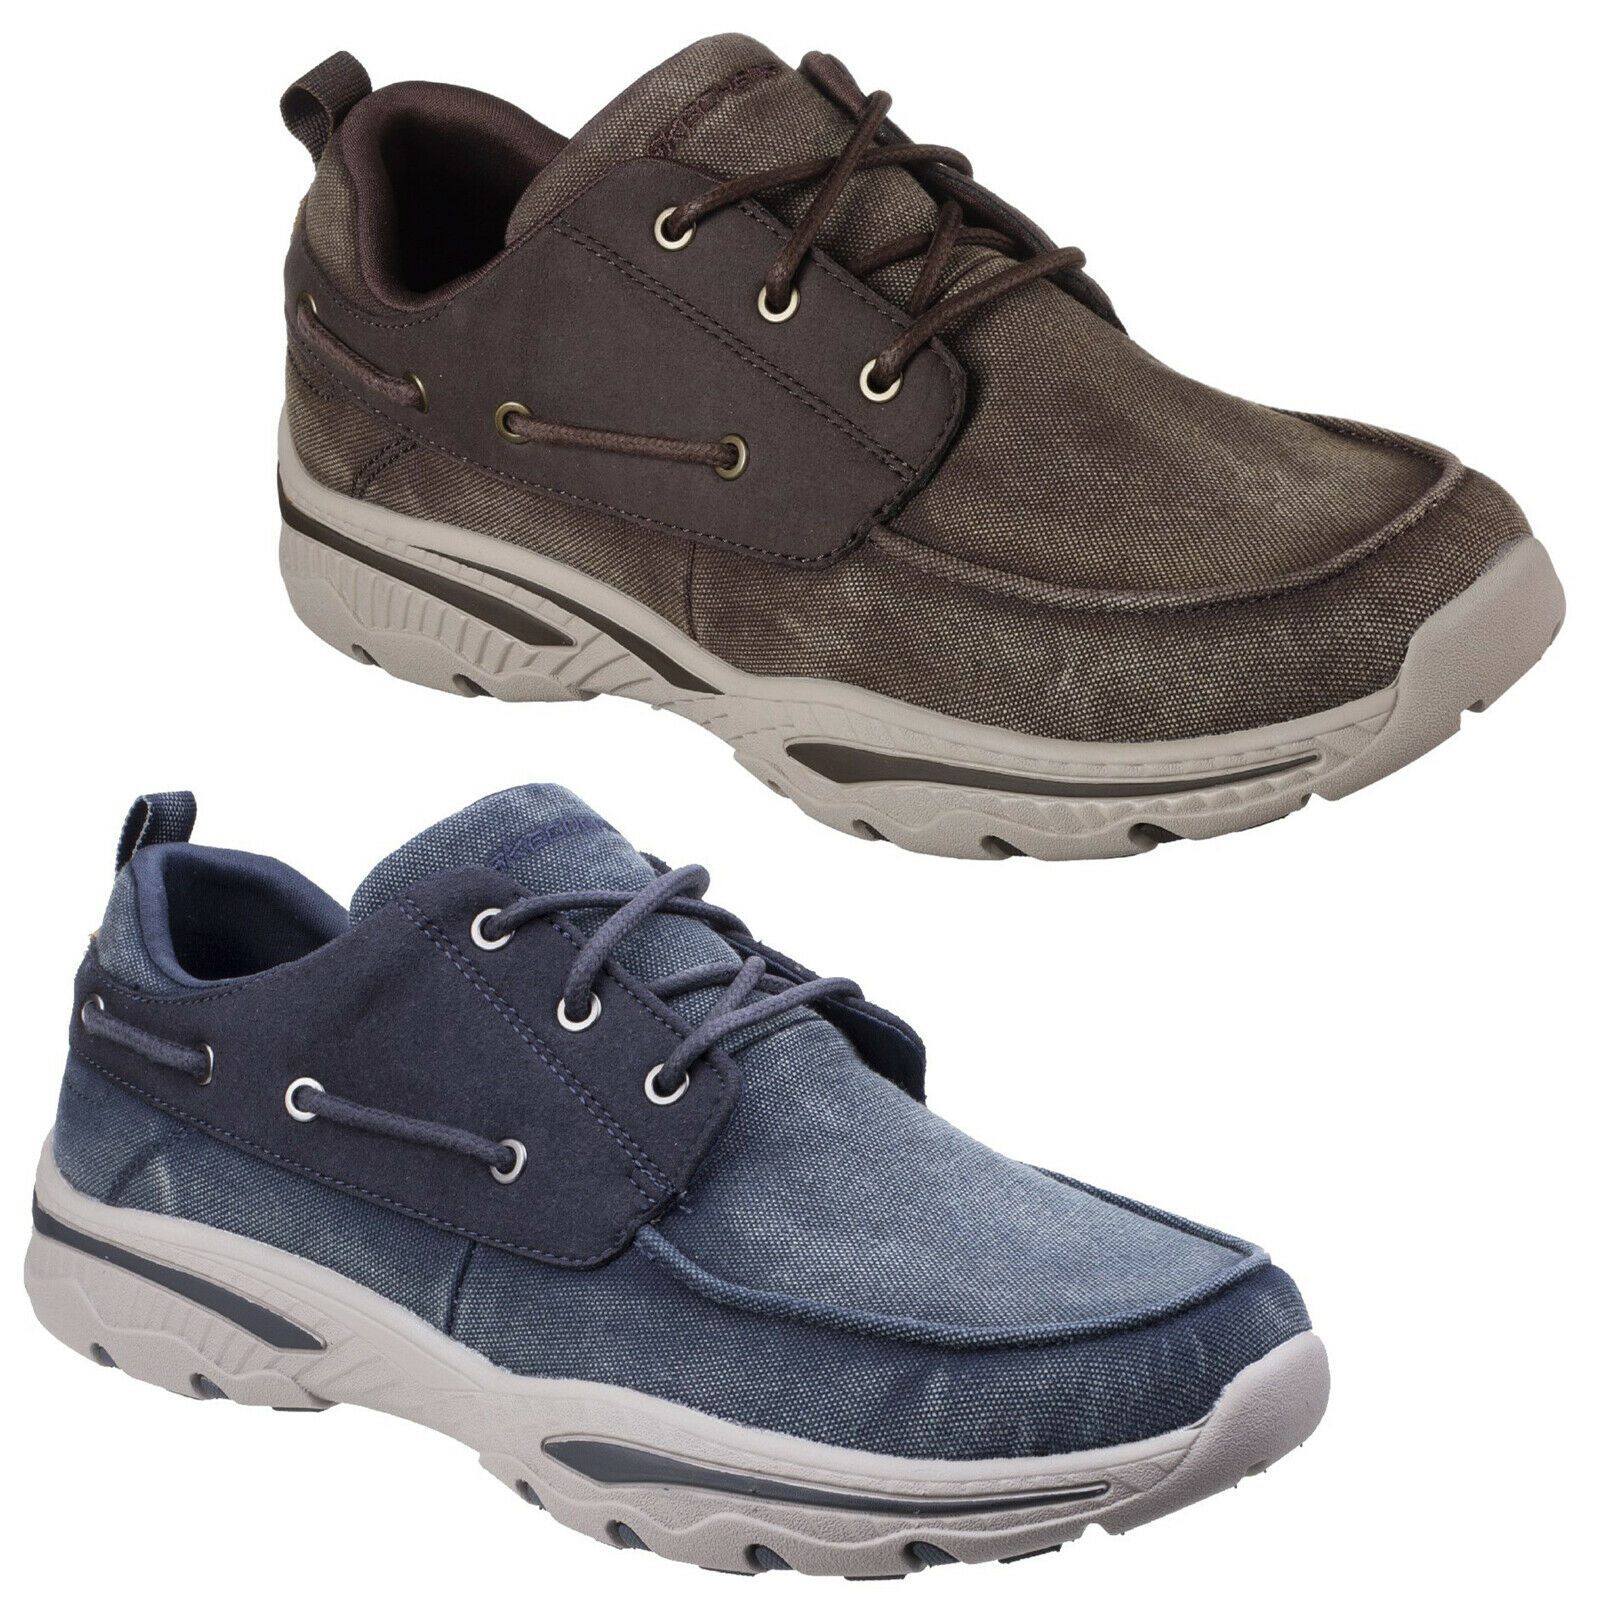 Skechers Creston Vosen shoes Memory Foam Canvas Lace Up Summer Boat Sneaker Mens